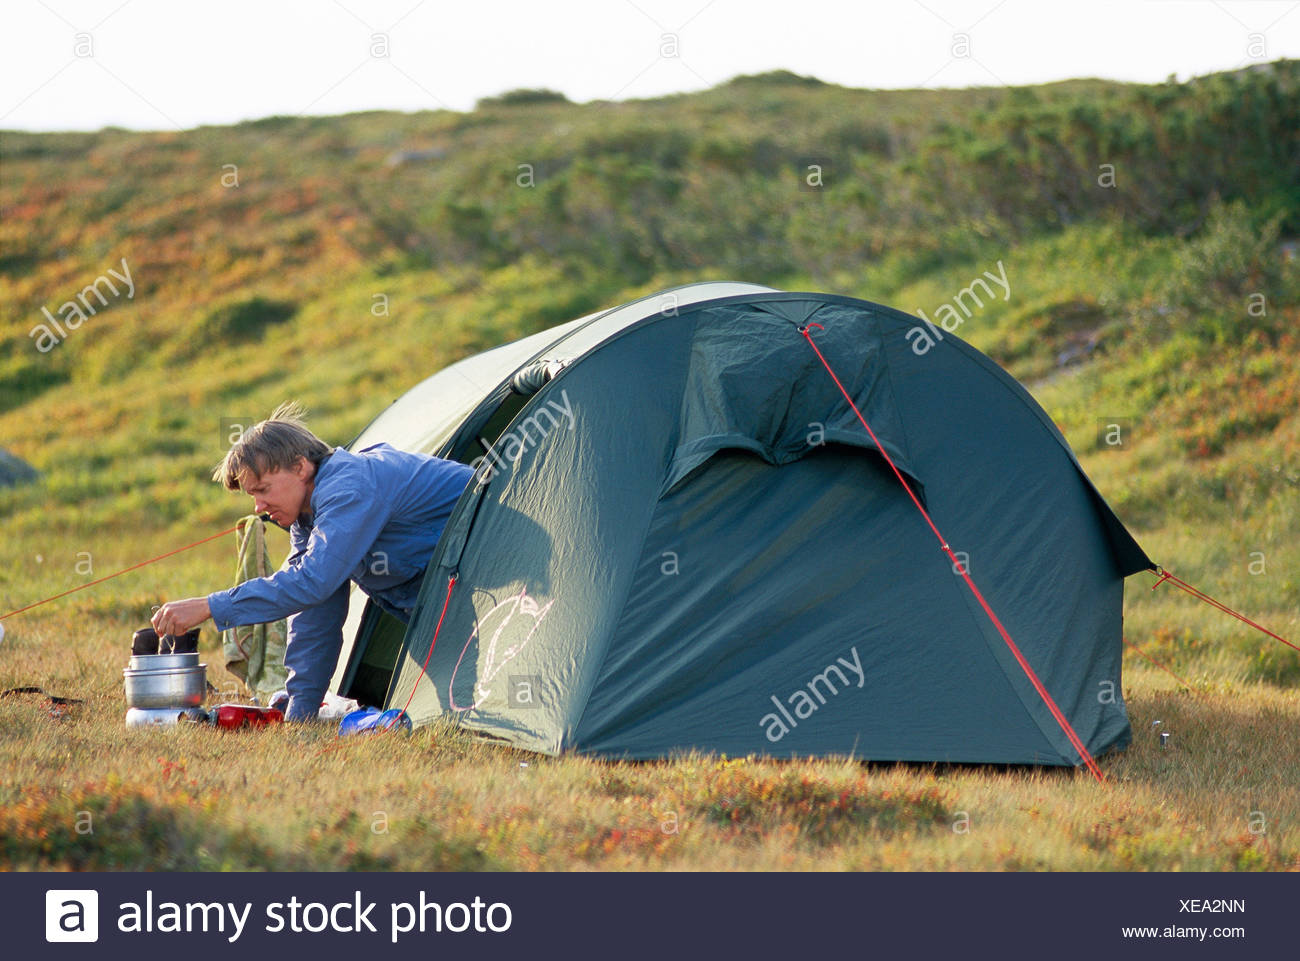 A woman camping. - Stock Image